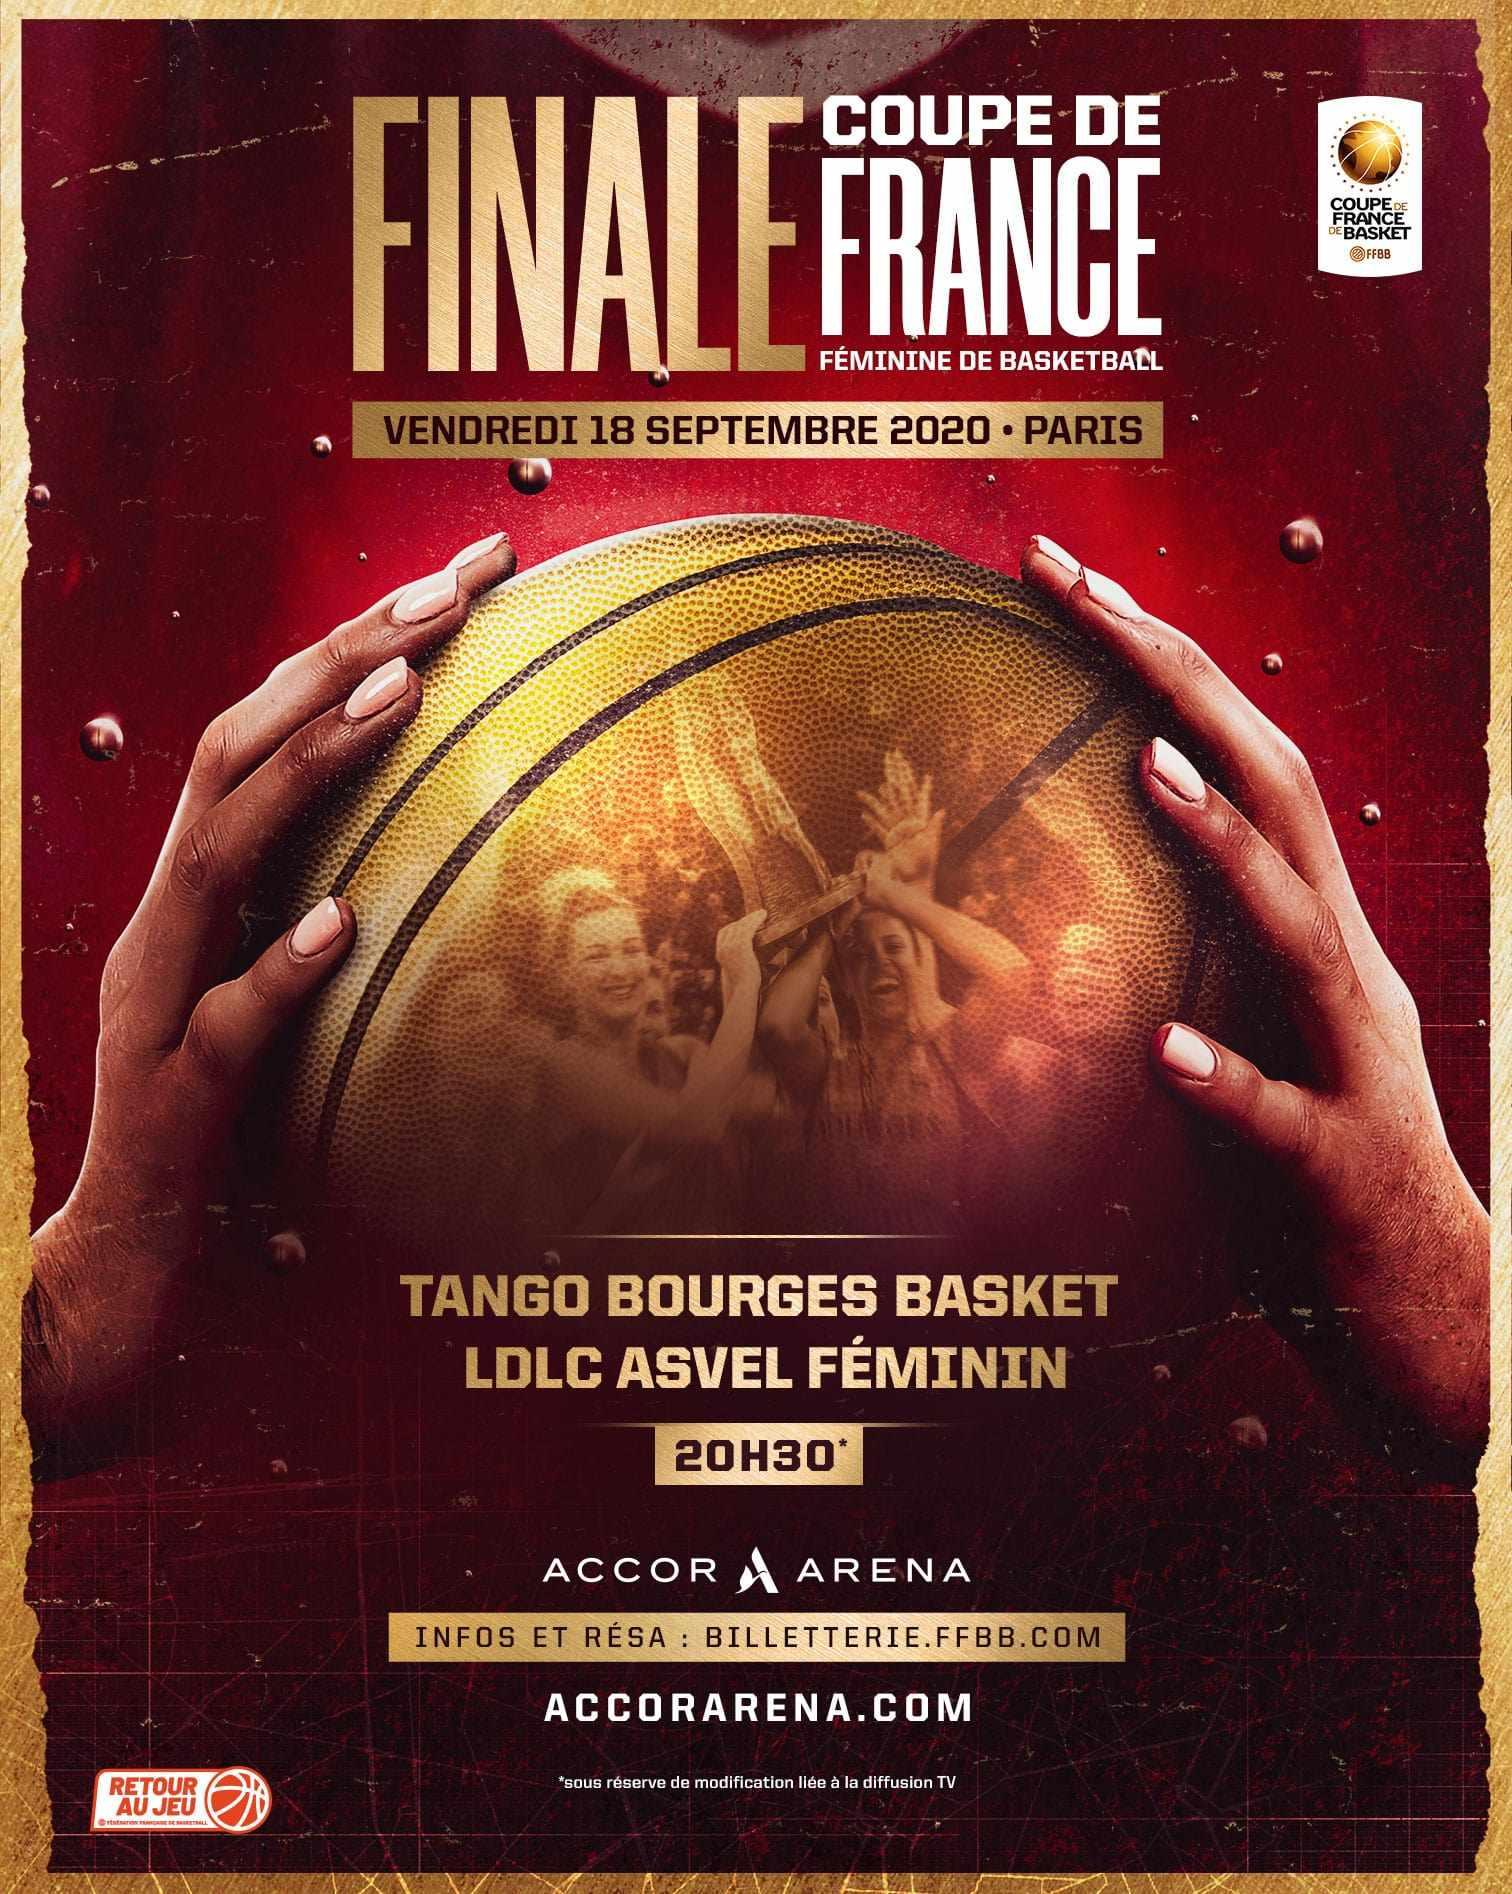 COUPE DE FRANCE FÉMININE DE BASKET